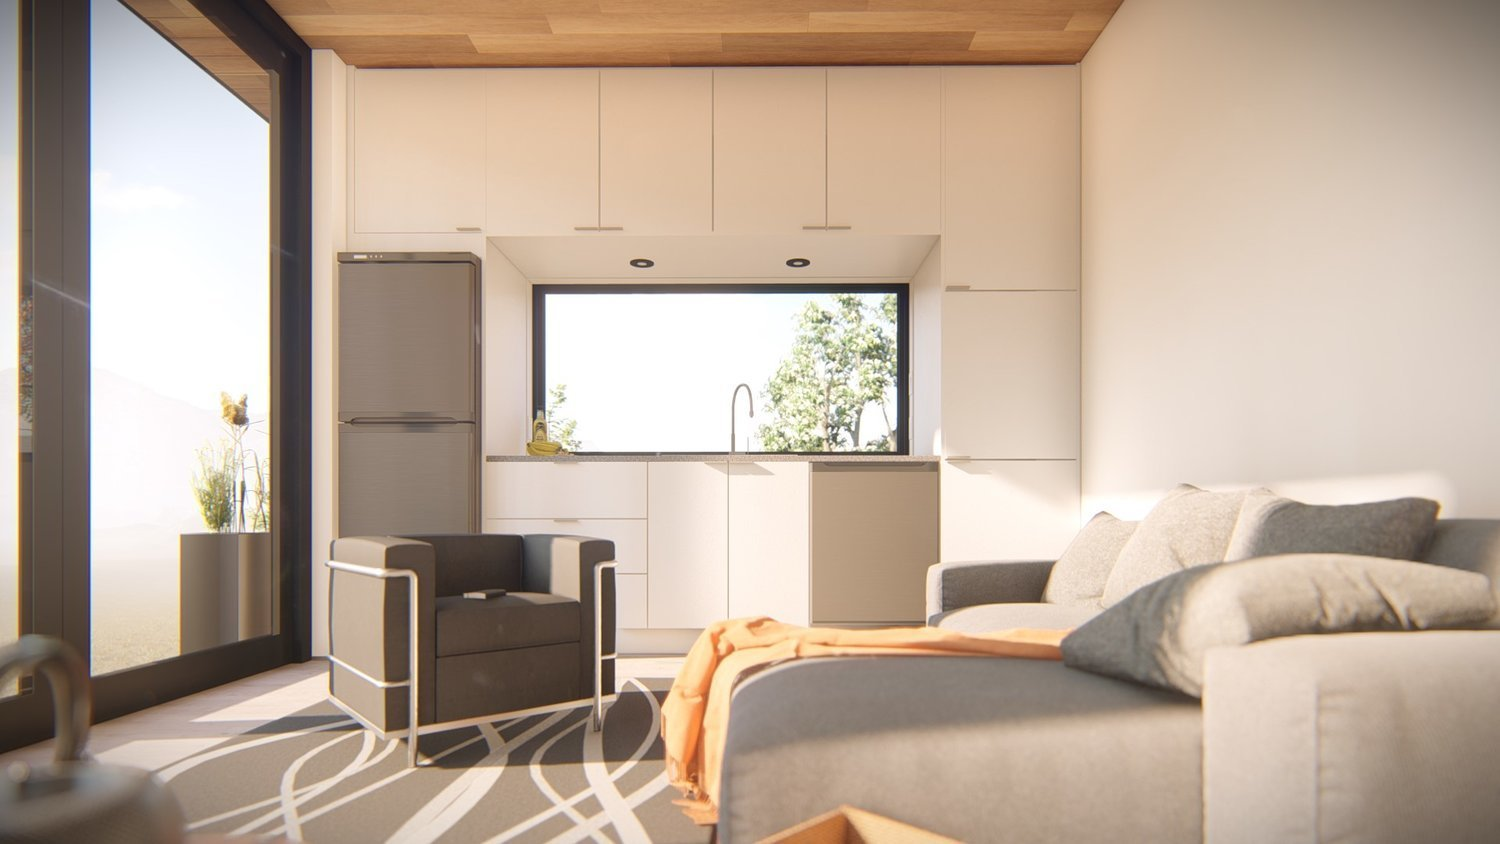 Offering a truly seamless indoor/outdoor experience with floor-to-ceiling windows, the M Studio, like all Honomobo models, can be customized with a variety of upgrades, like this high-gloss white cabinetry and premium countertop.